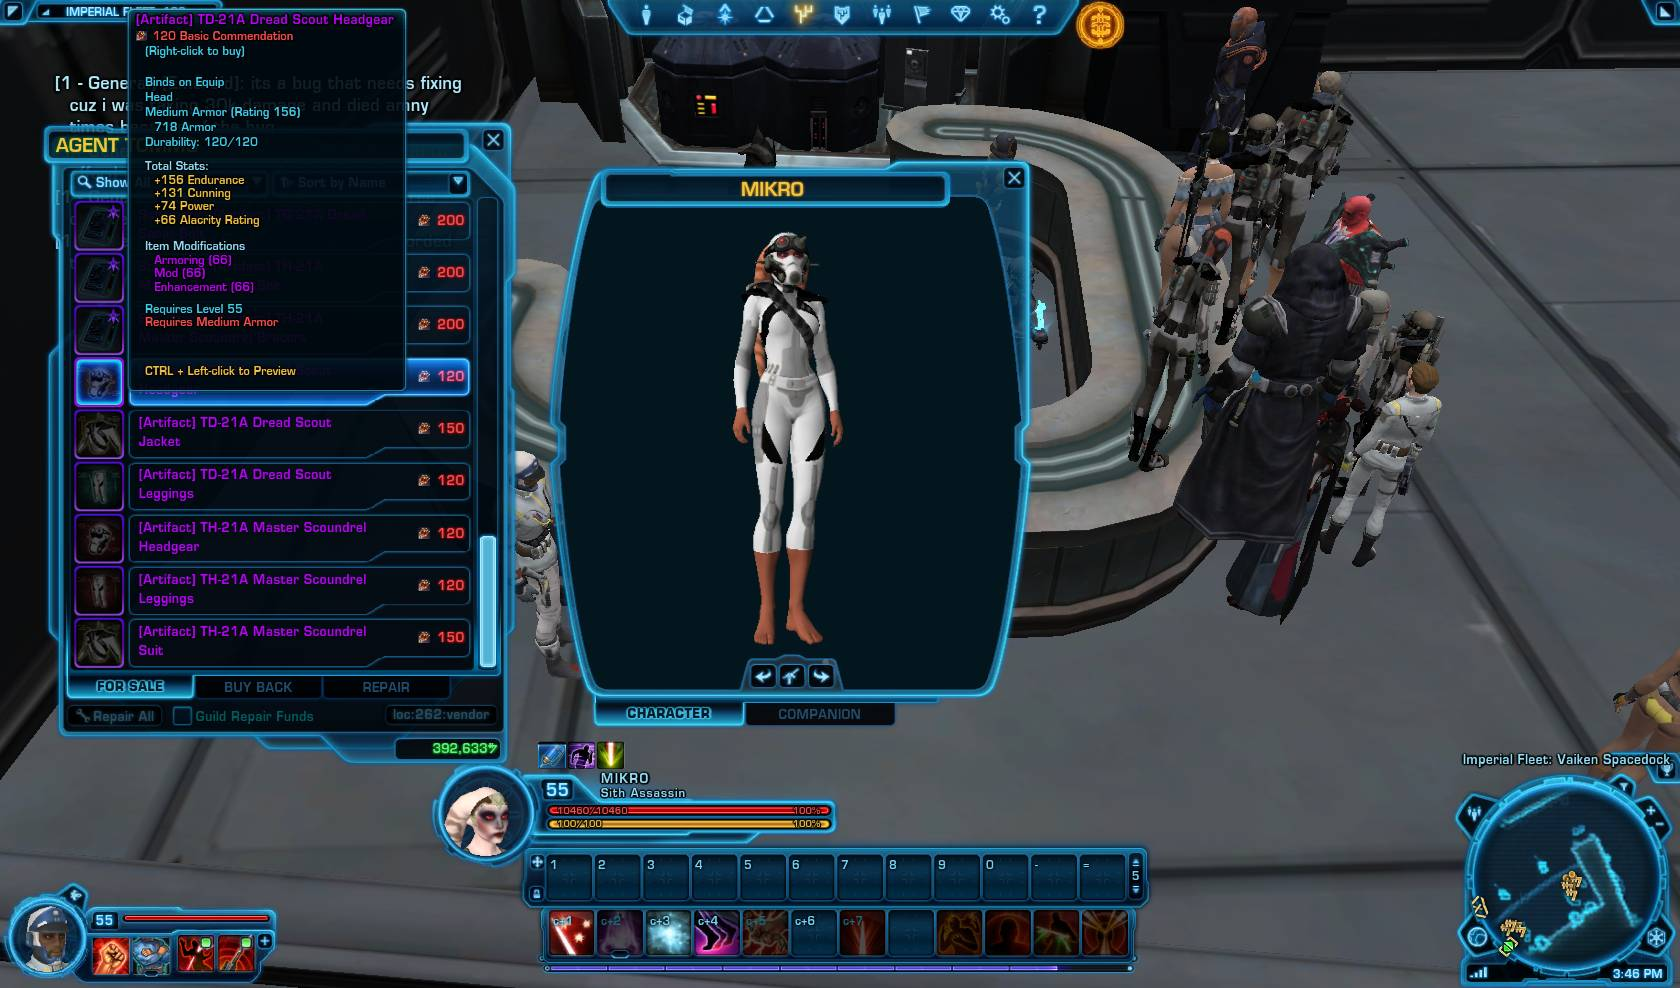 SWTOR EndGame Gearing Guide for PvE and PvP ... - VULKK.com